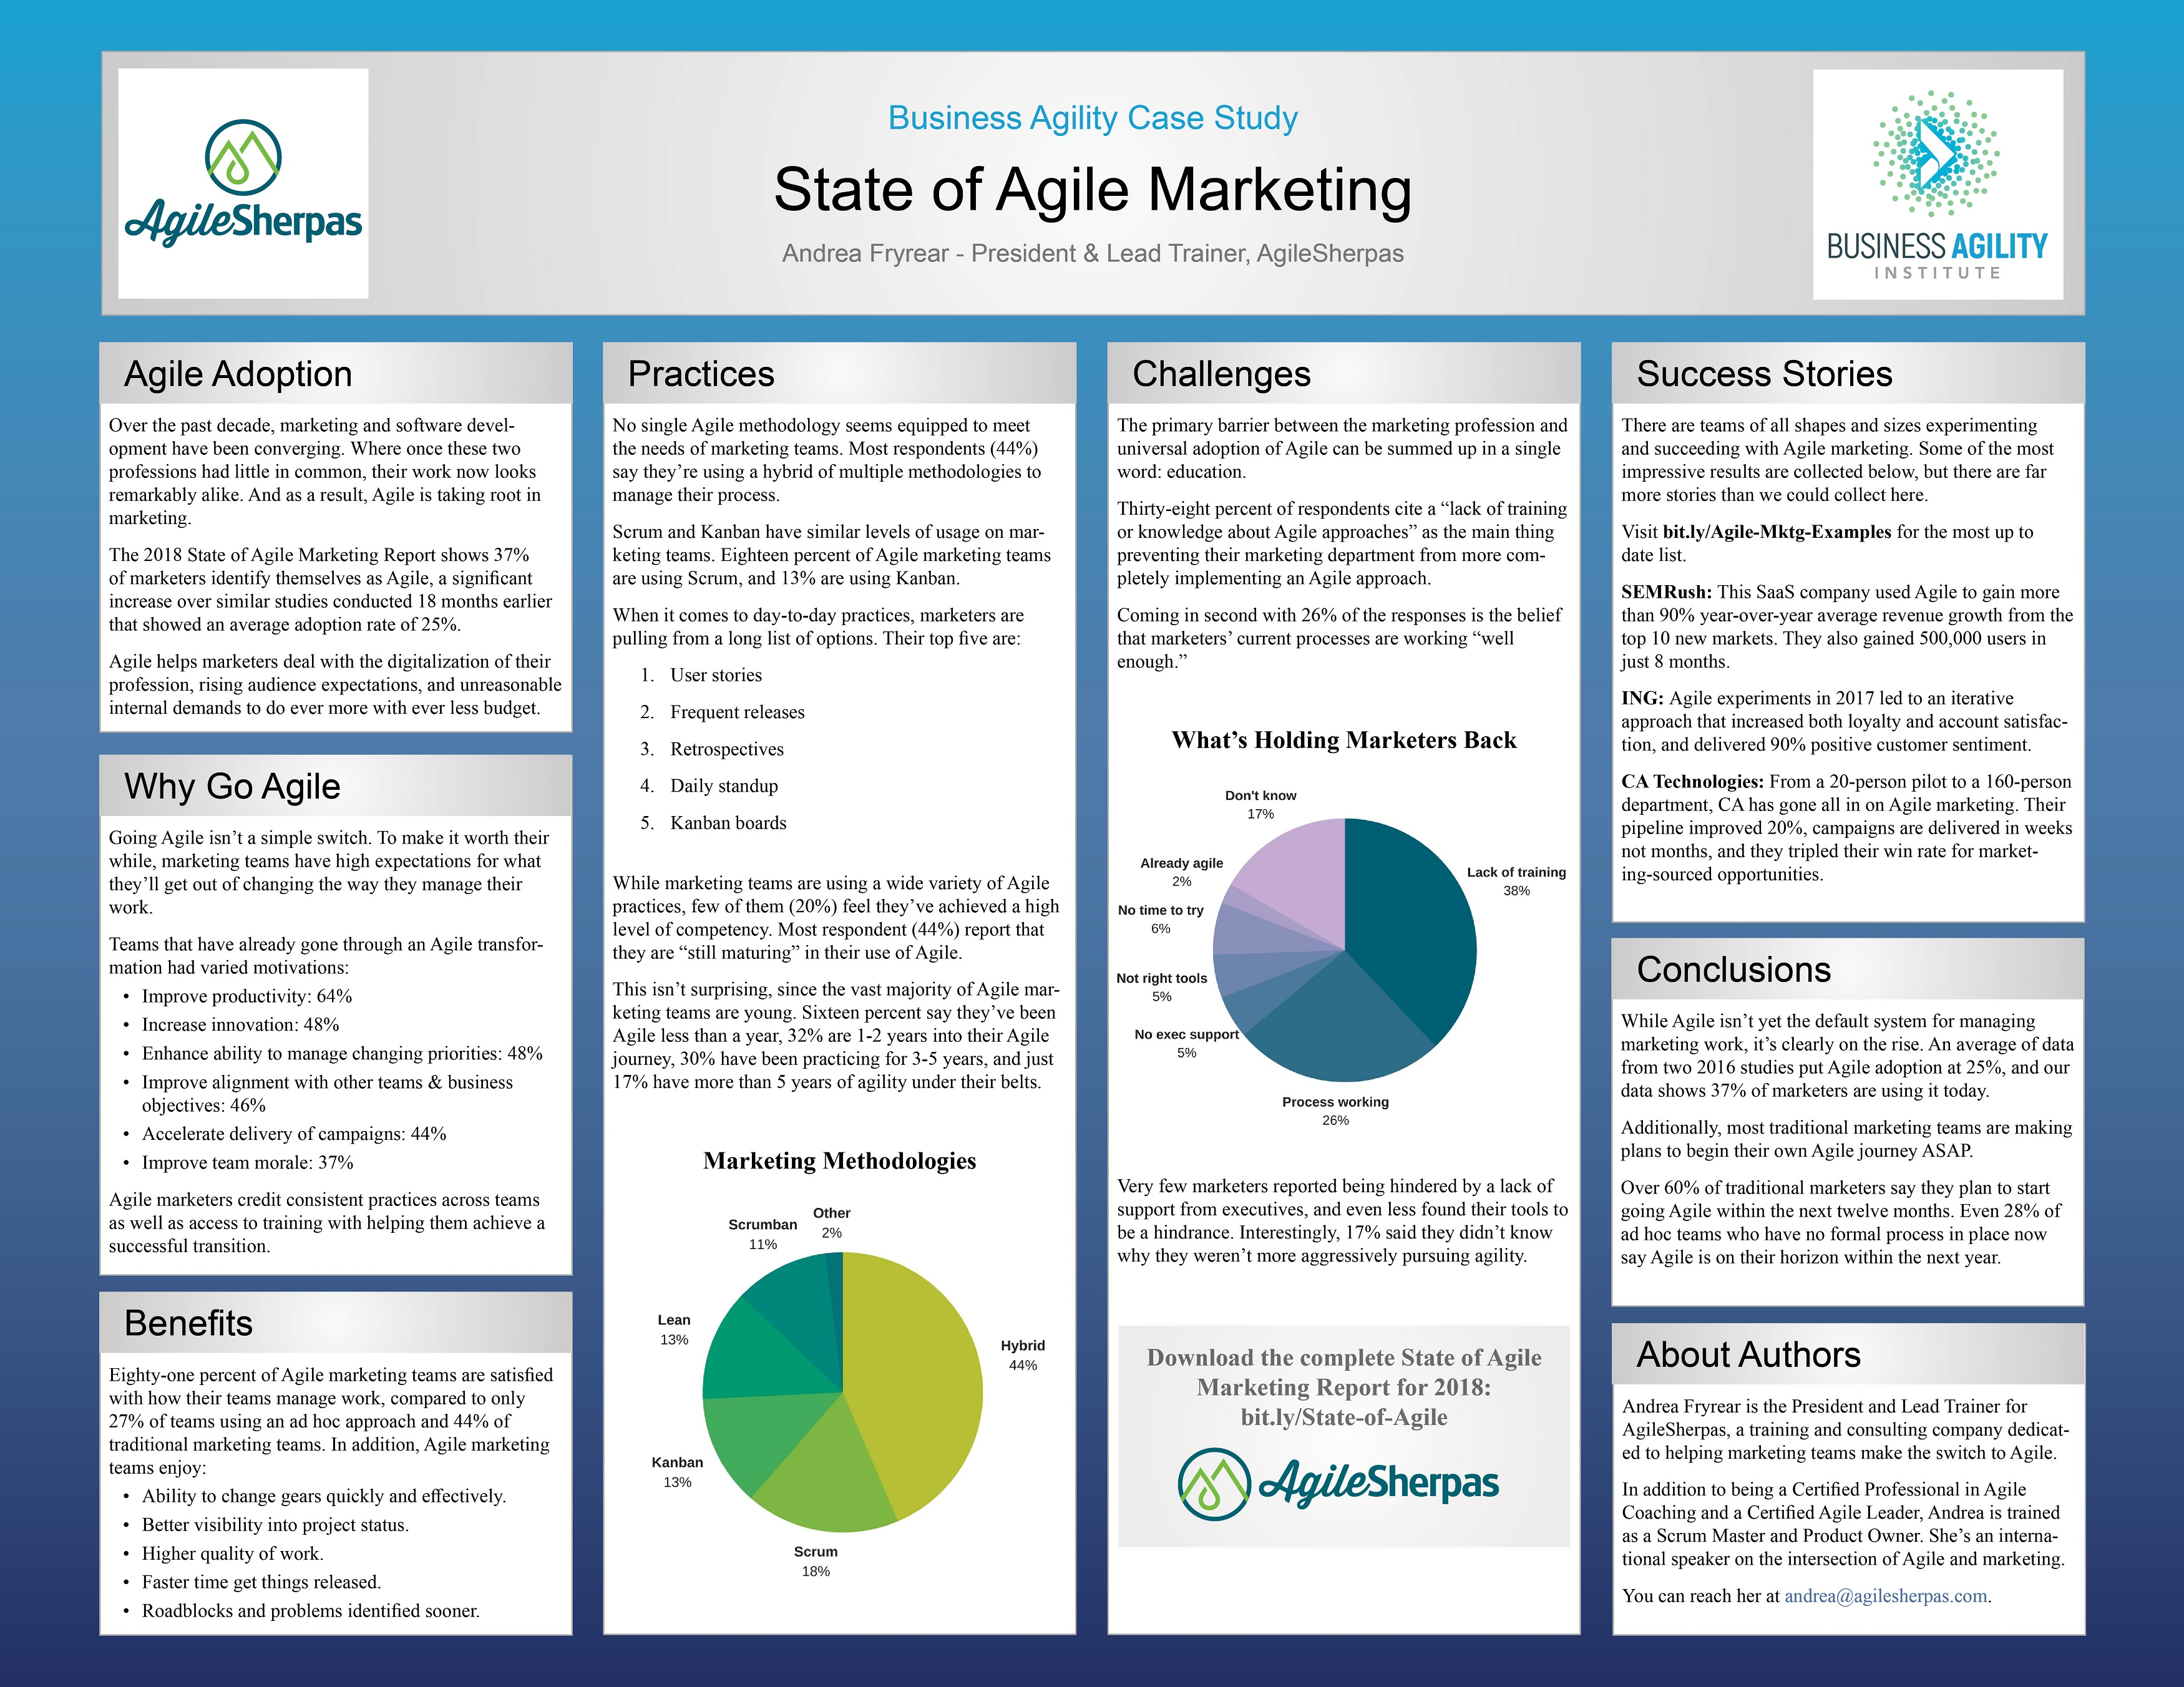 State of Agile Marketing Poster